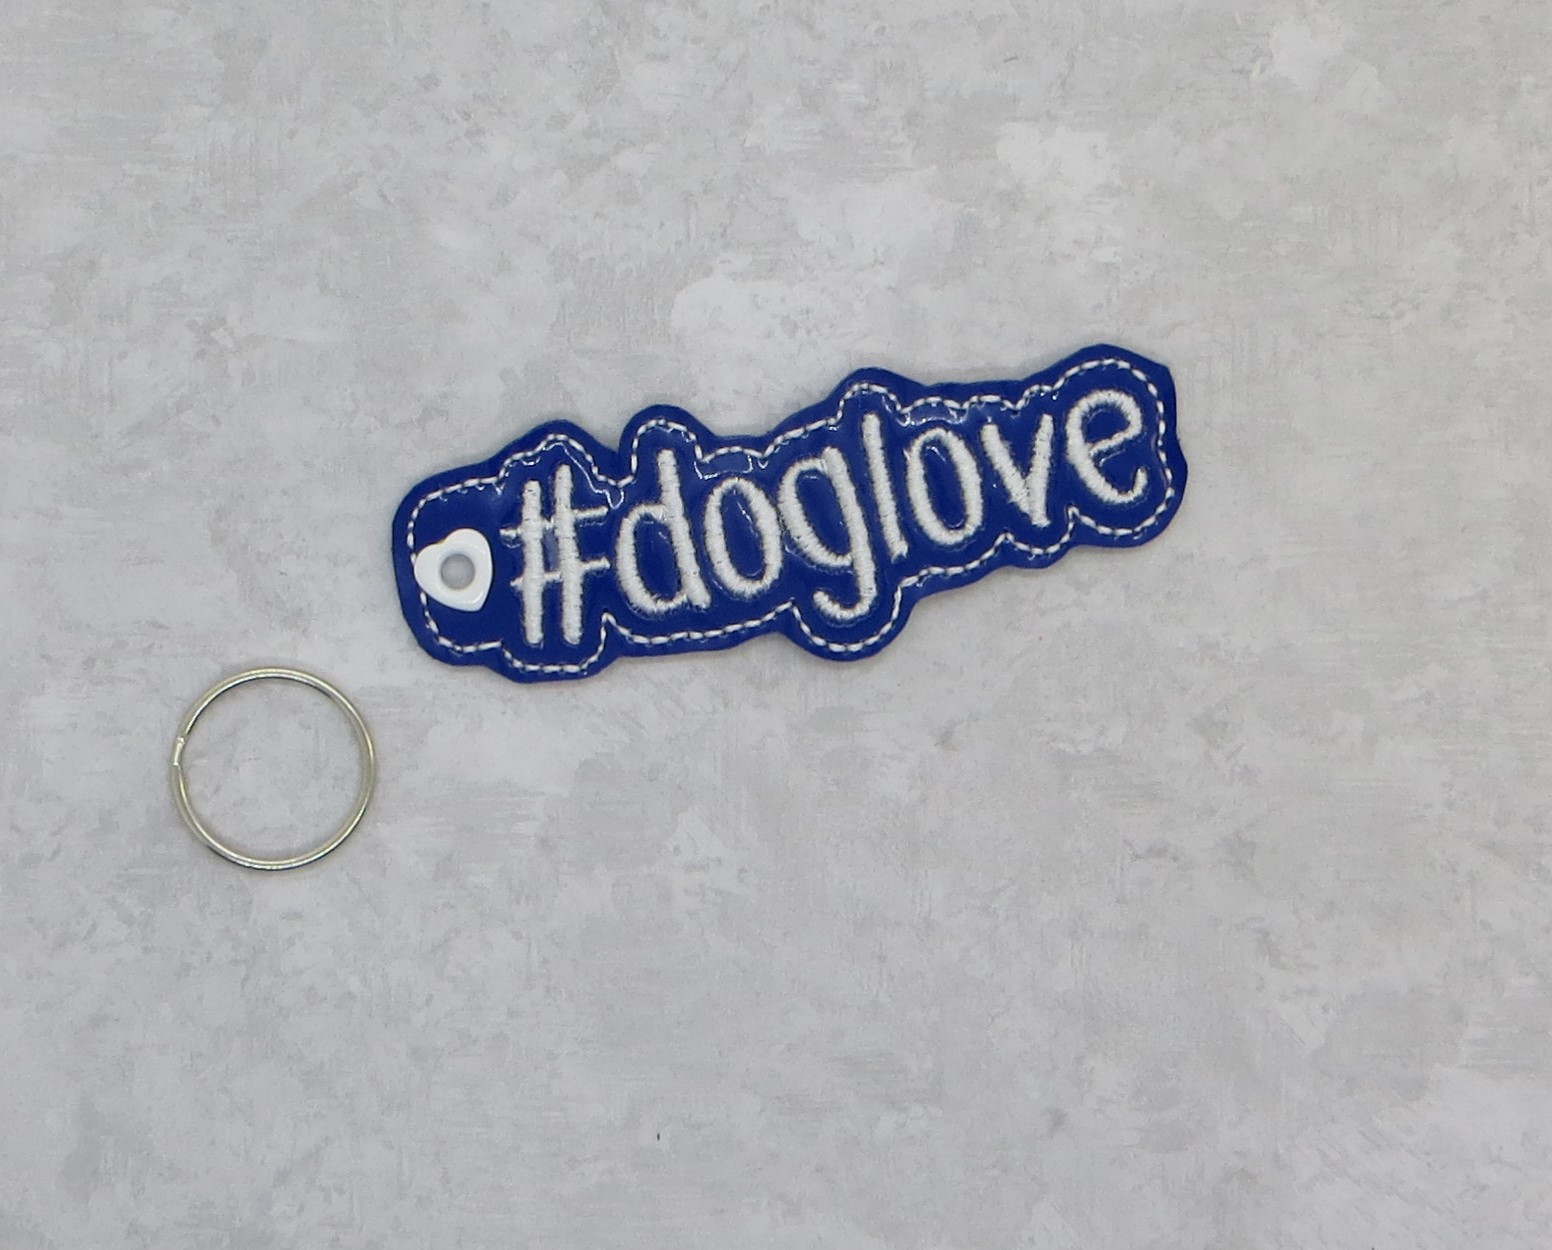 #doglove KeyFob Embroidery Design